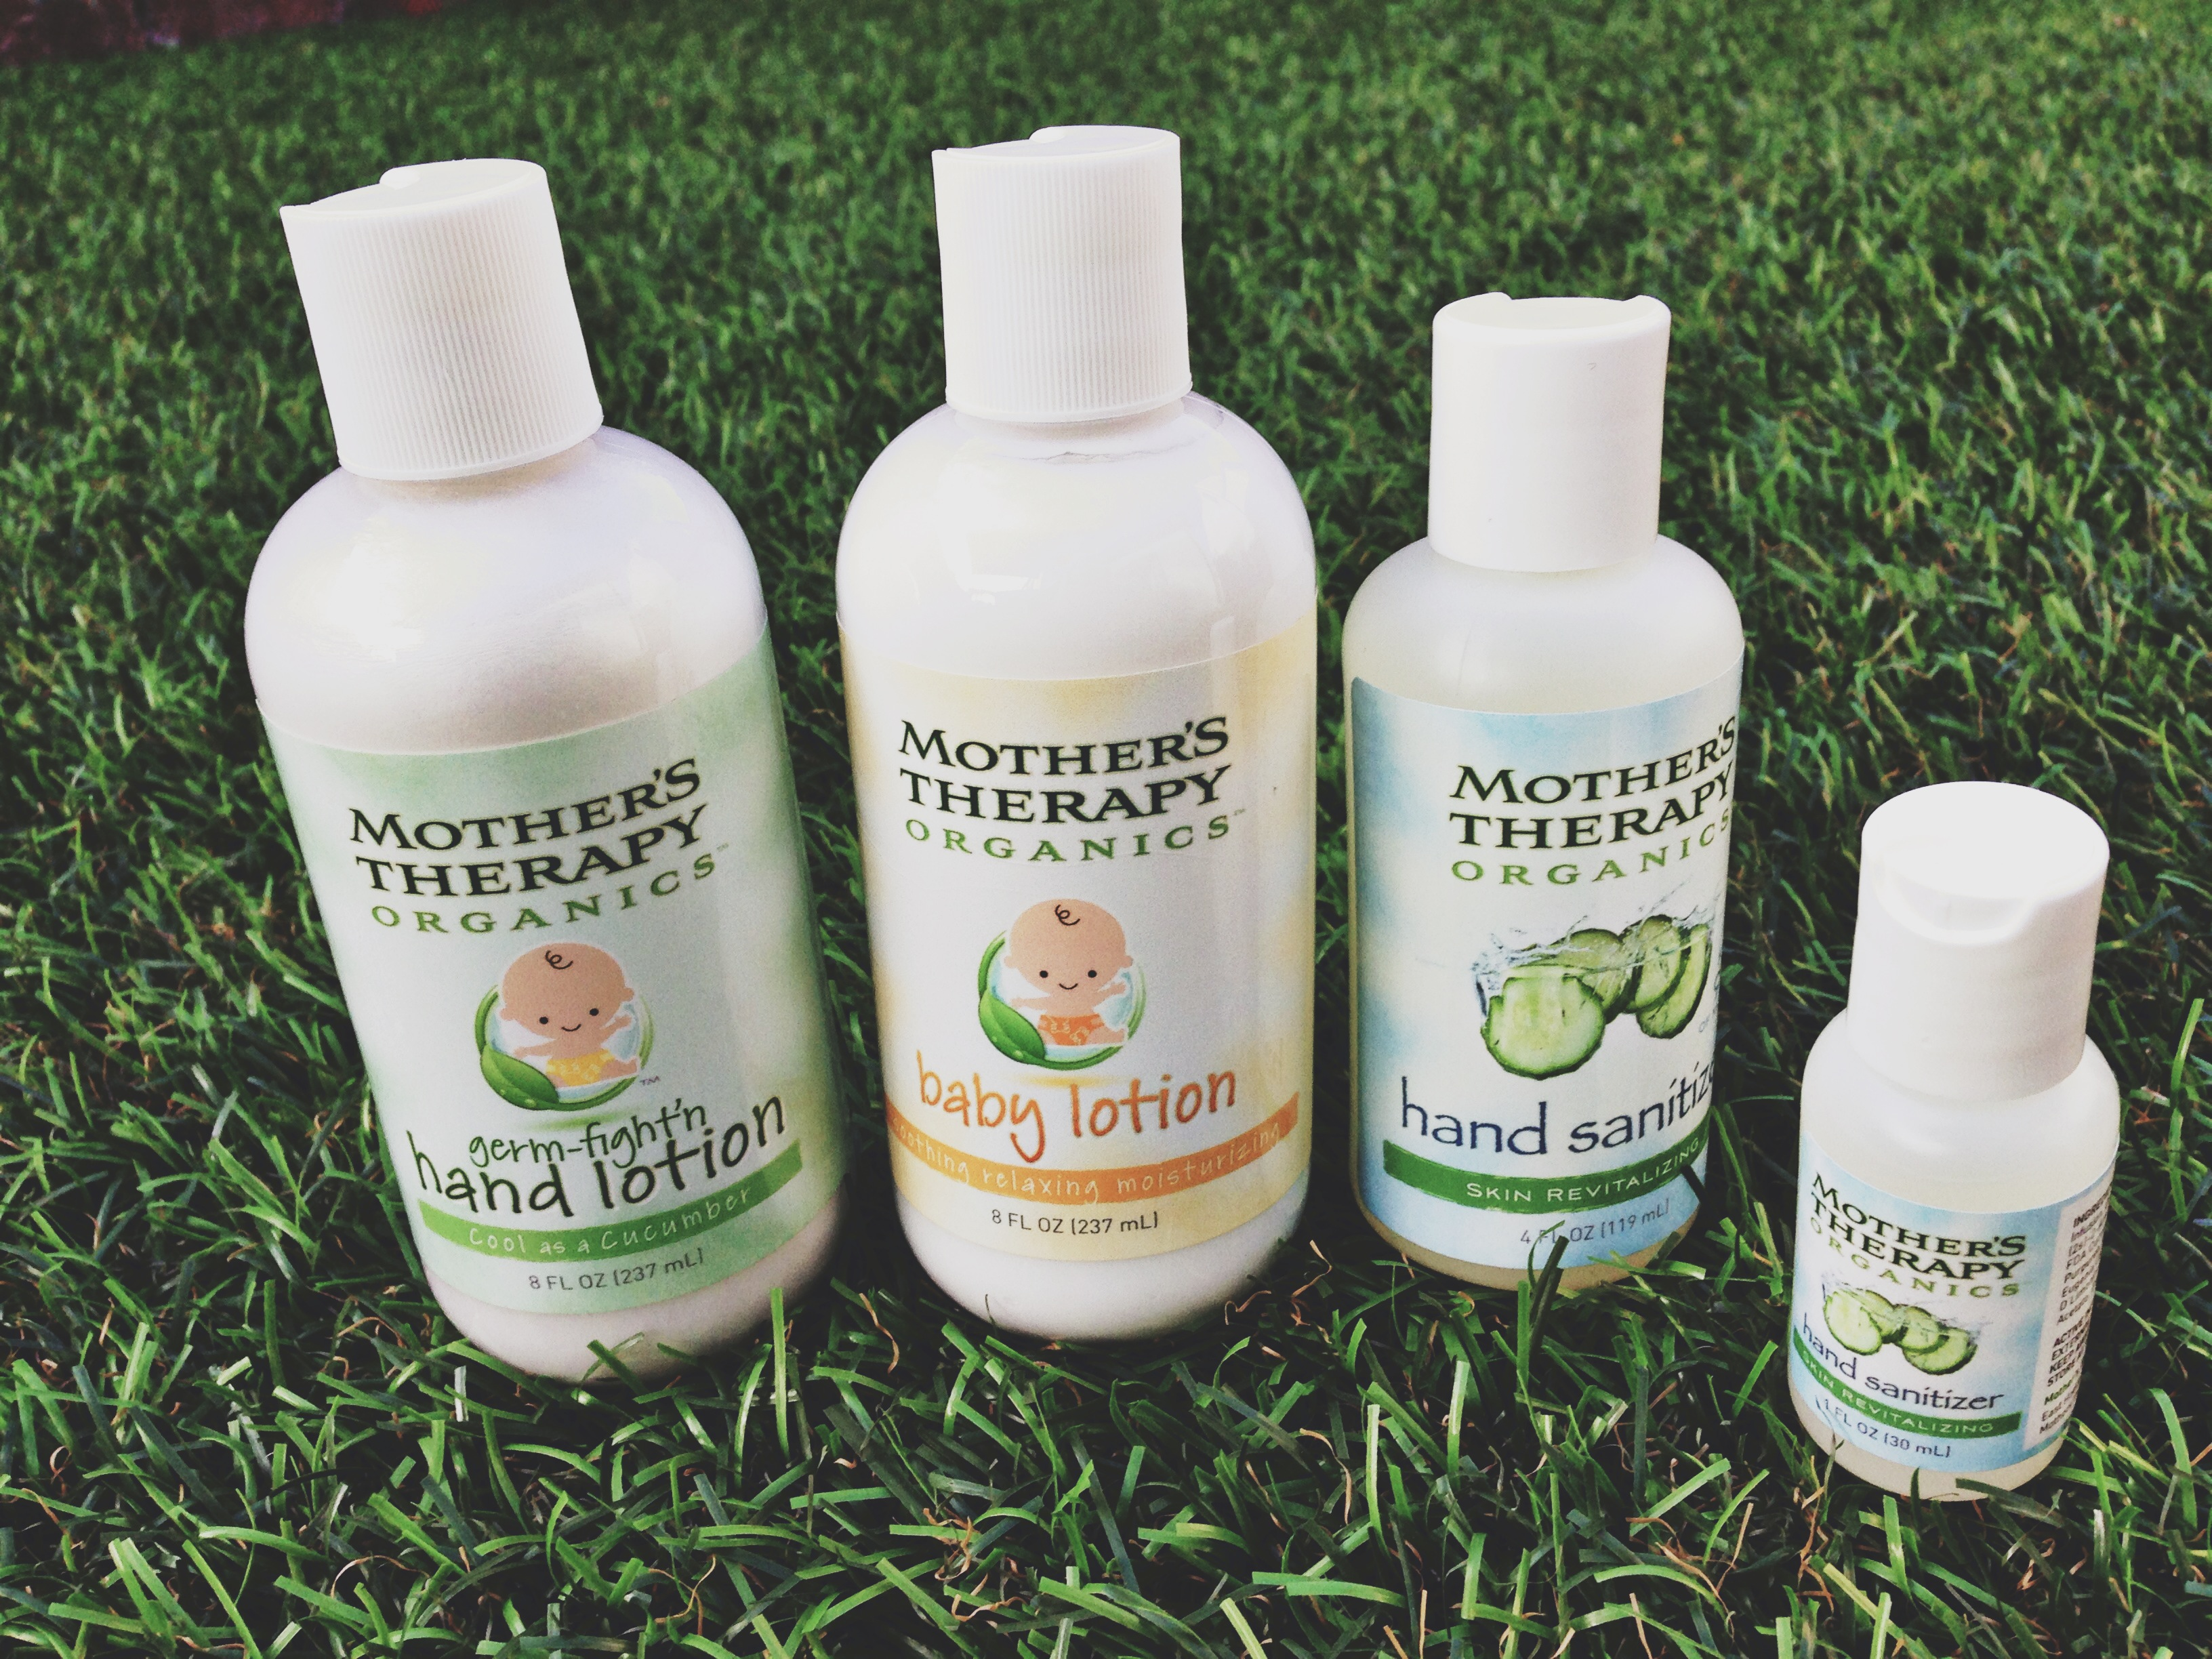 Product Review Amp Giveaway Mother S Therapy Organics Runstylish